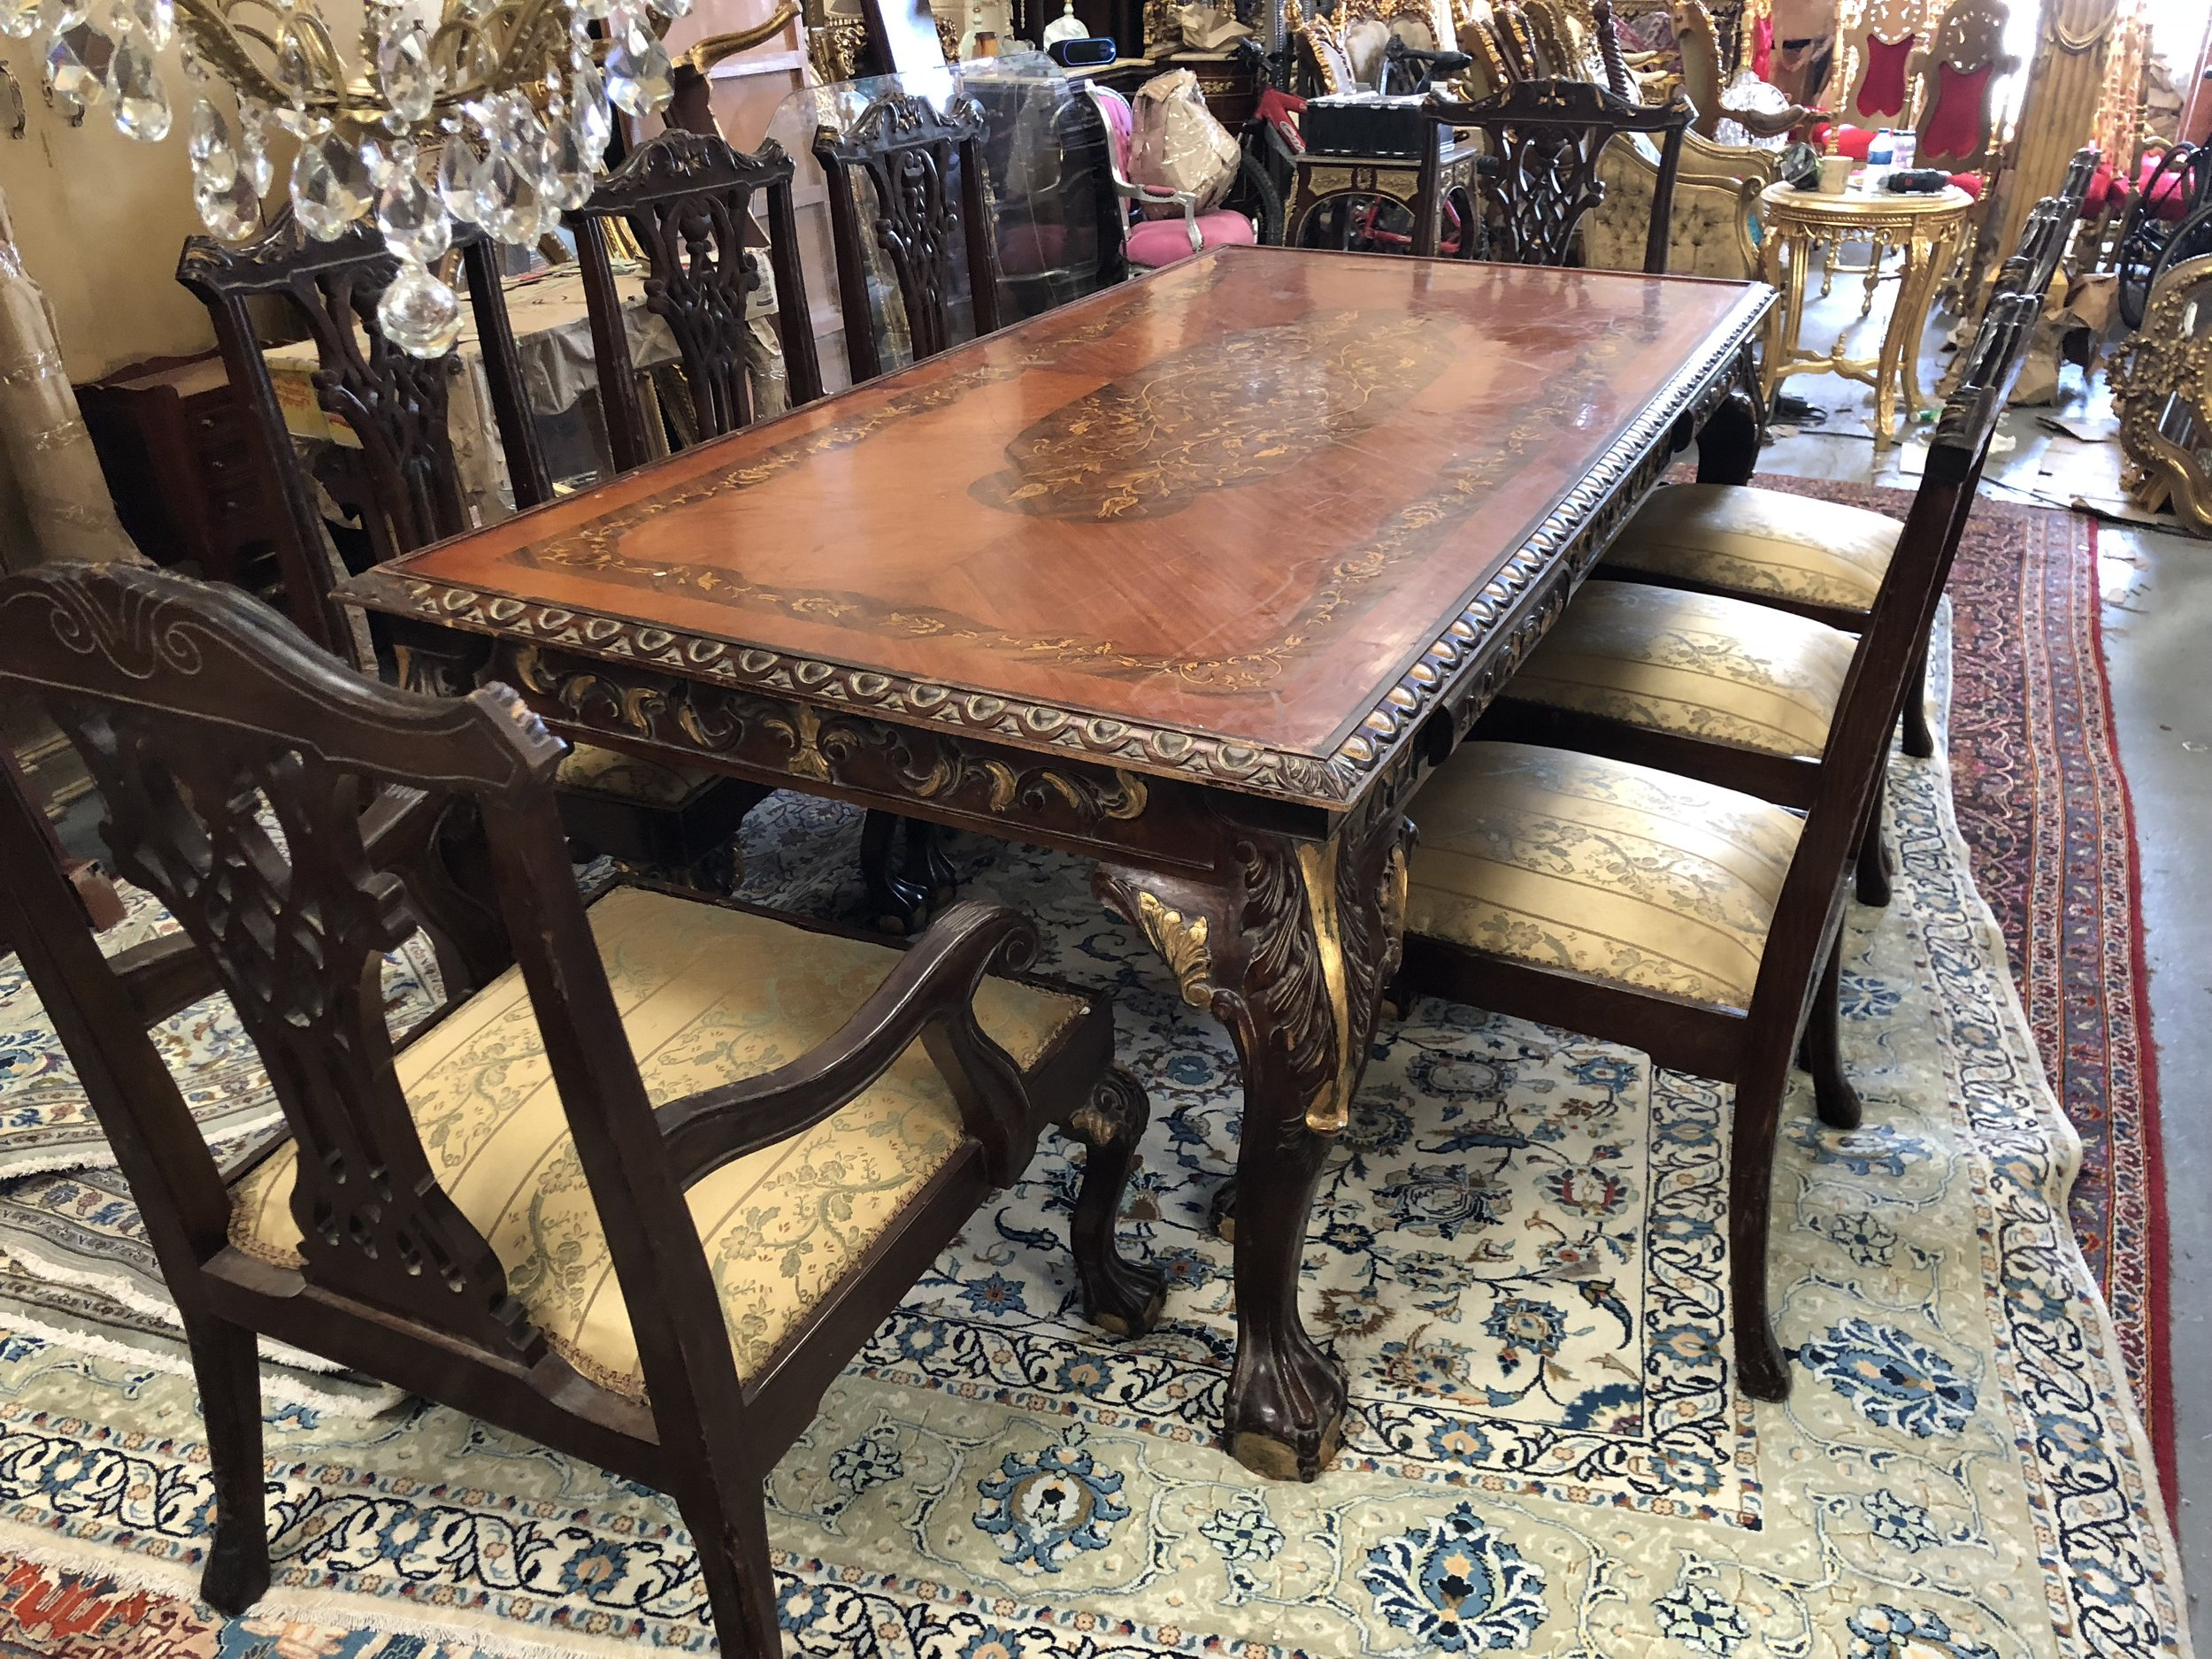 Renaissance Antique Furniture and Lighting Warehouse Dublin Ireland Dining table